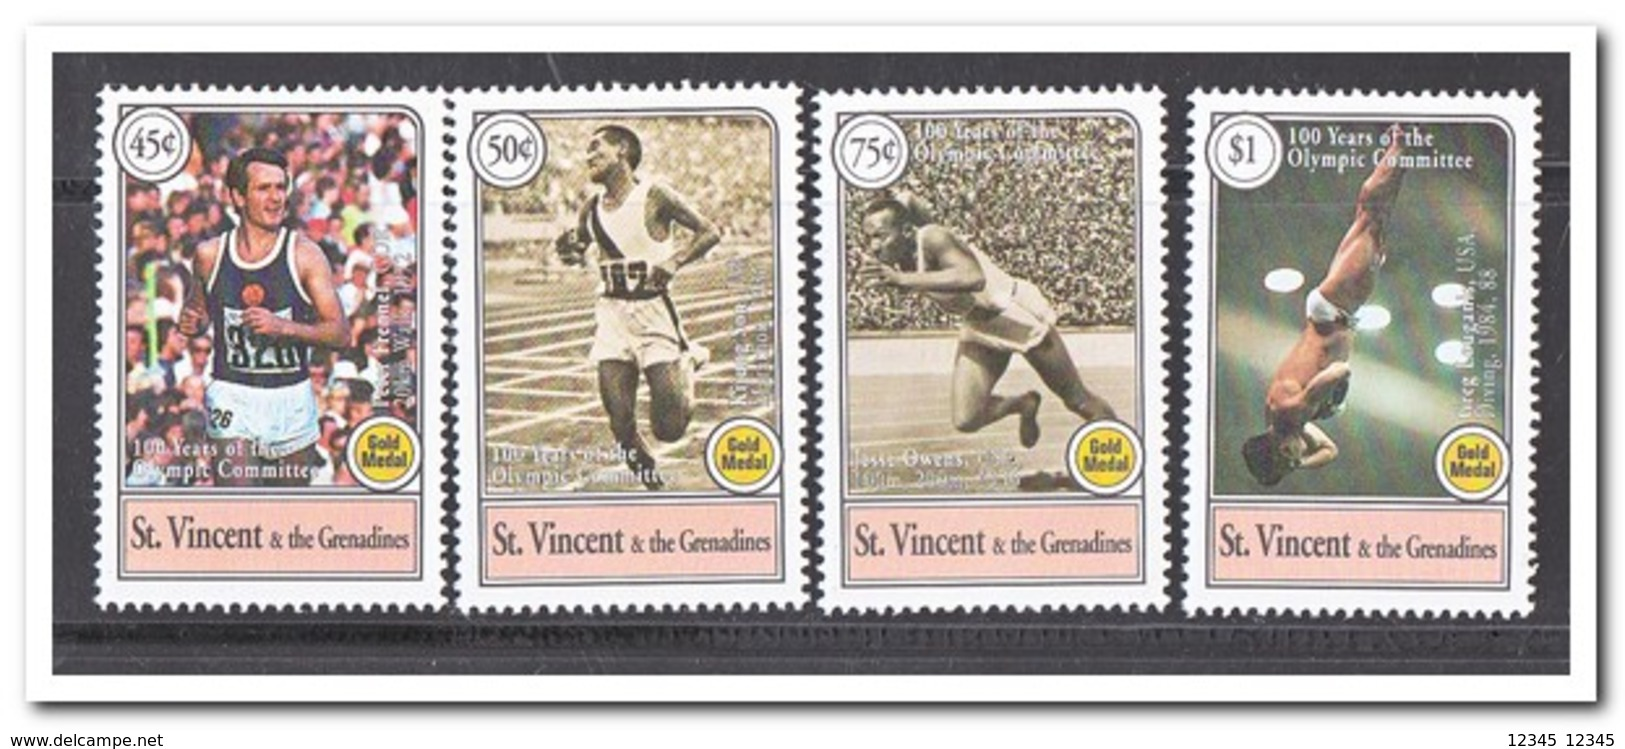 St. Vincent & The Grenadines, Postfris MNH, Olympic Games - St.-Vincent En De Grenadines